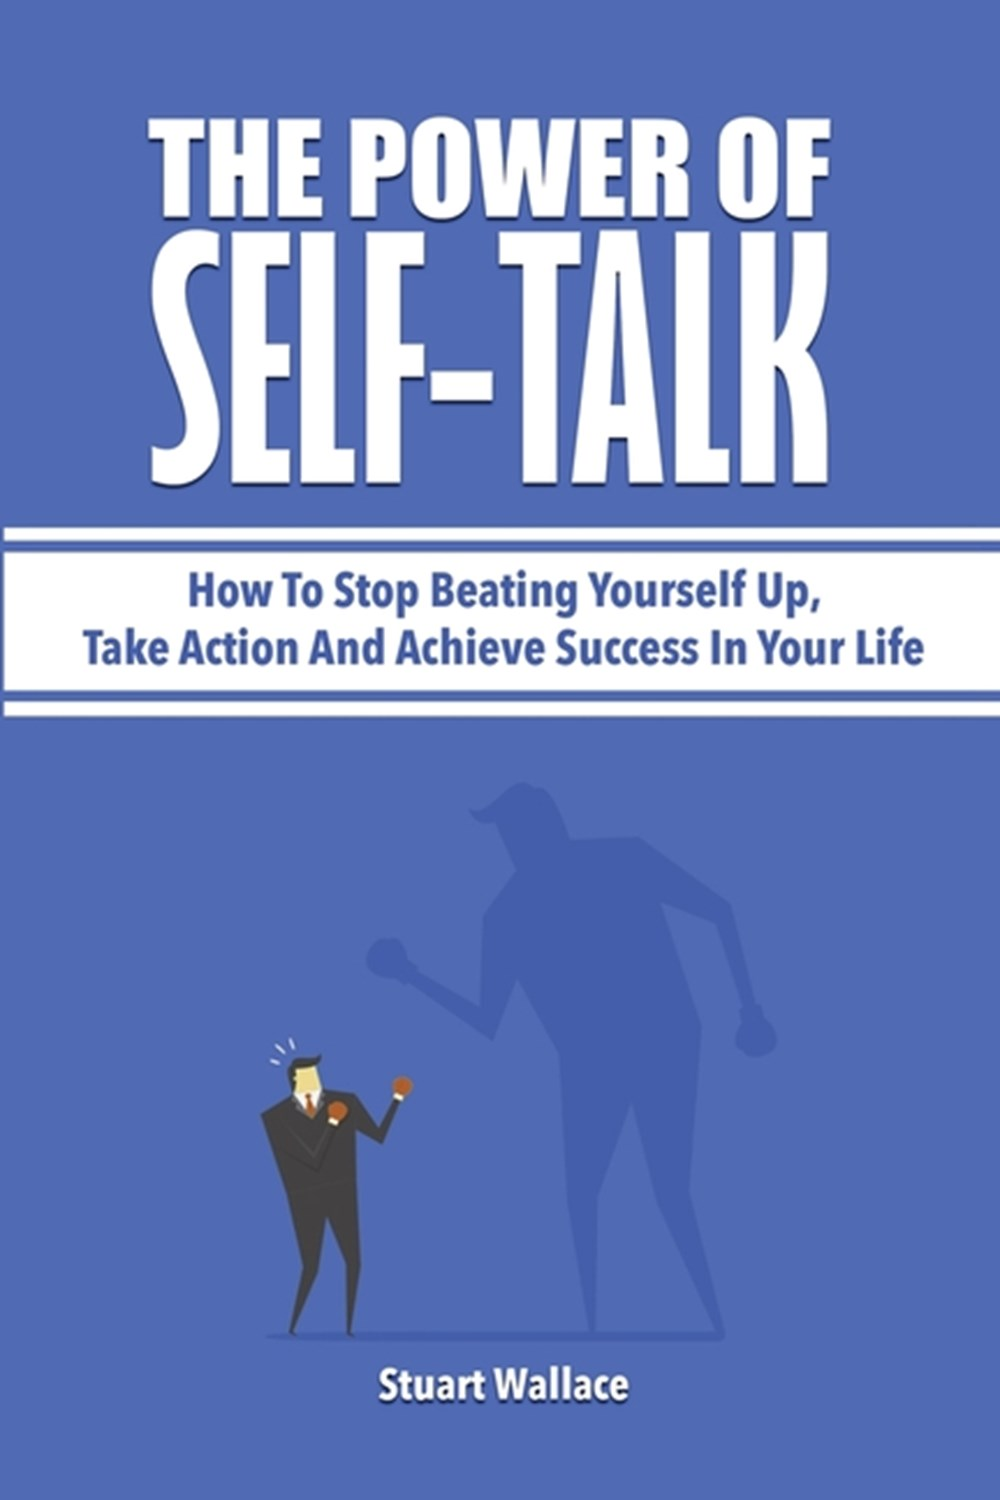 Power Of Self-Talk How To Stop Beating Yourself Up, Take Action And Achieve Success In Your Life